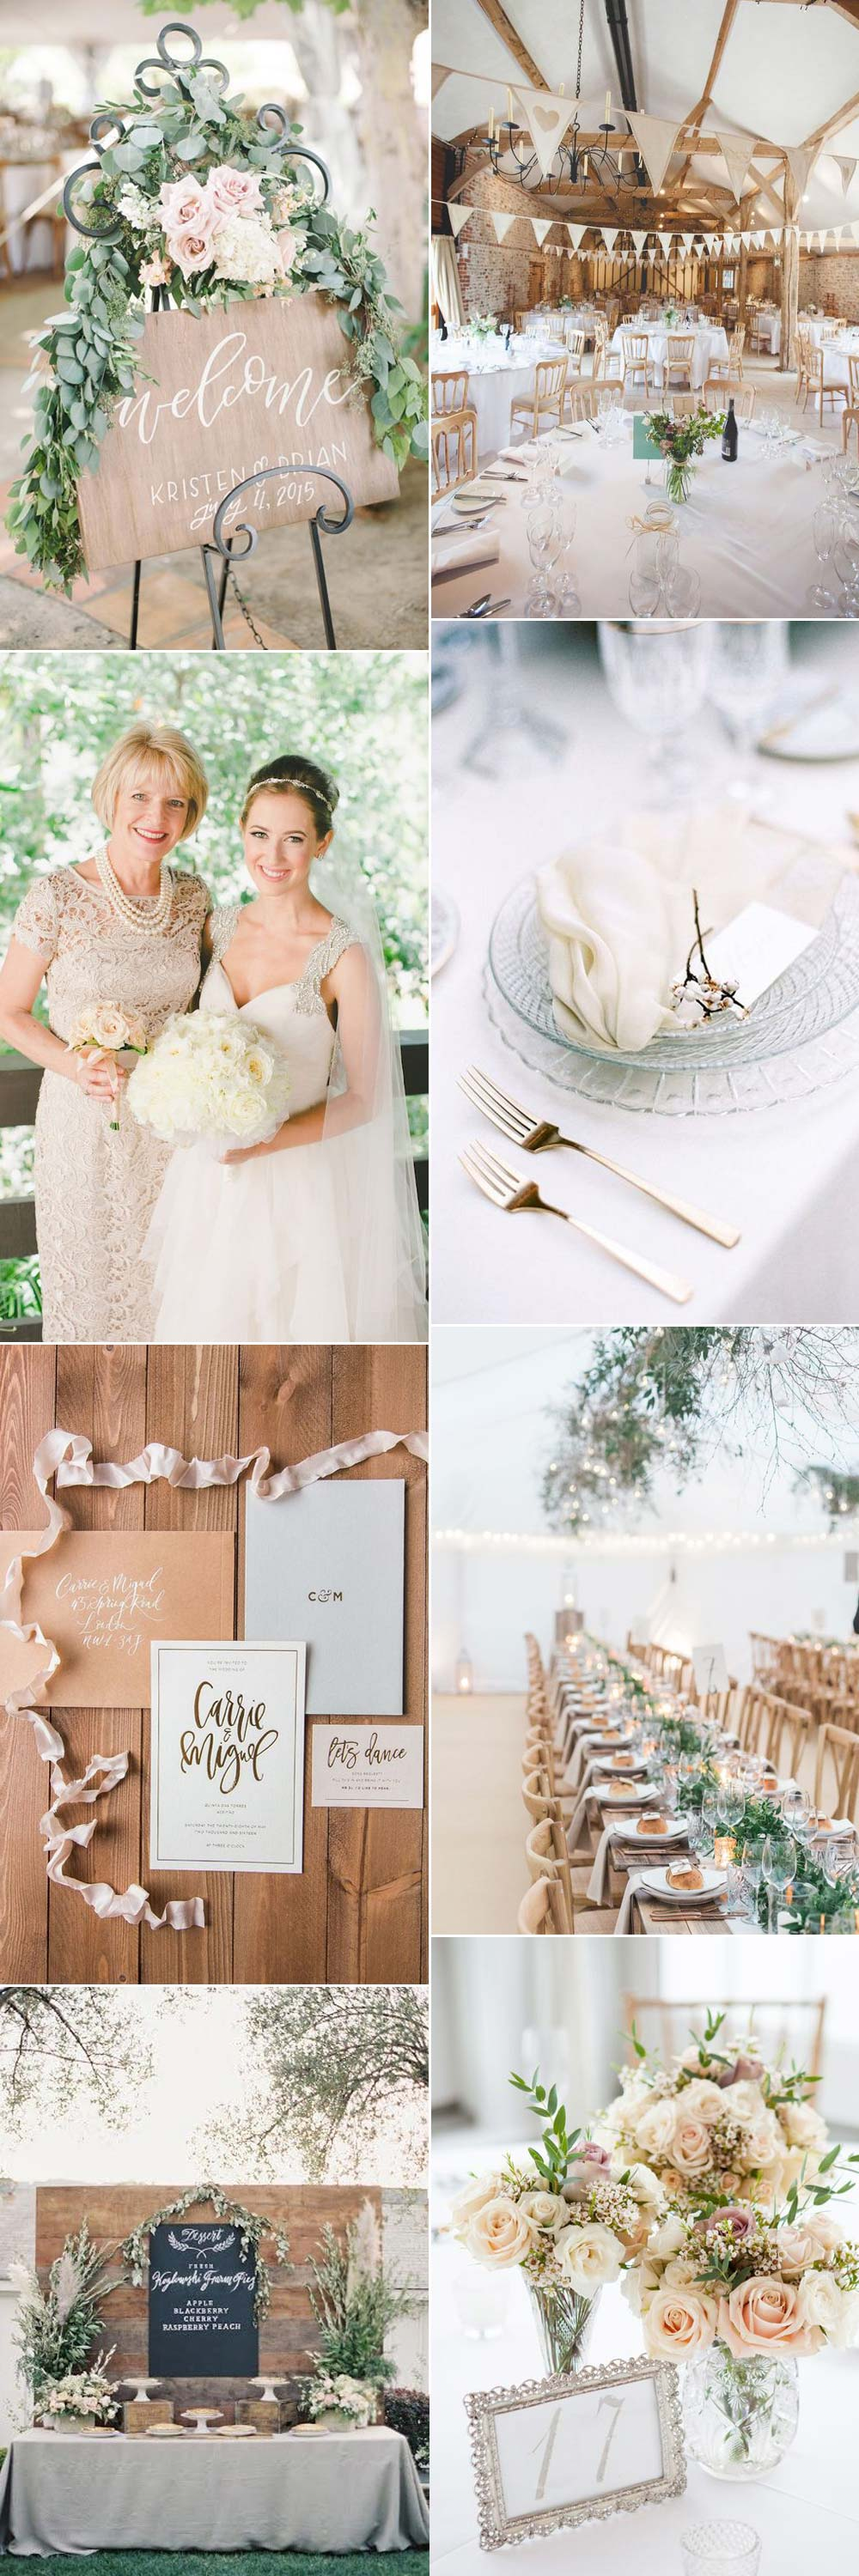 Neutral wedding colour theme ideas